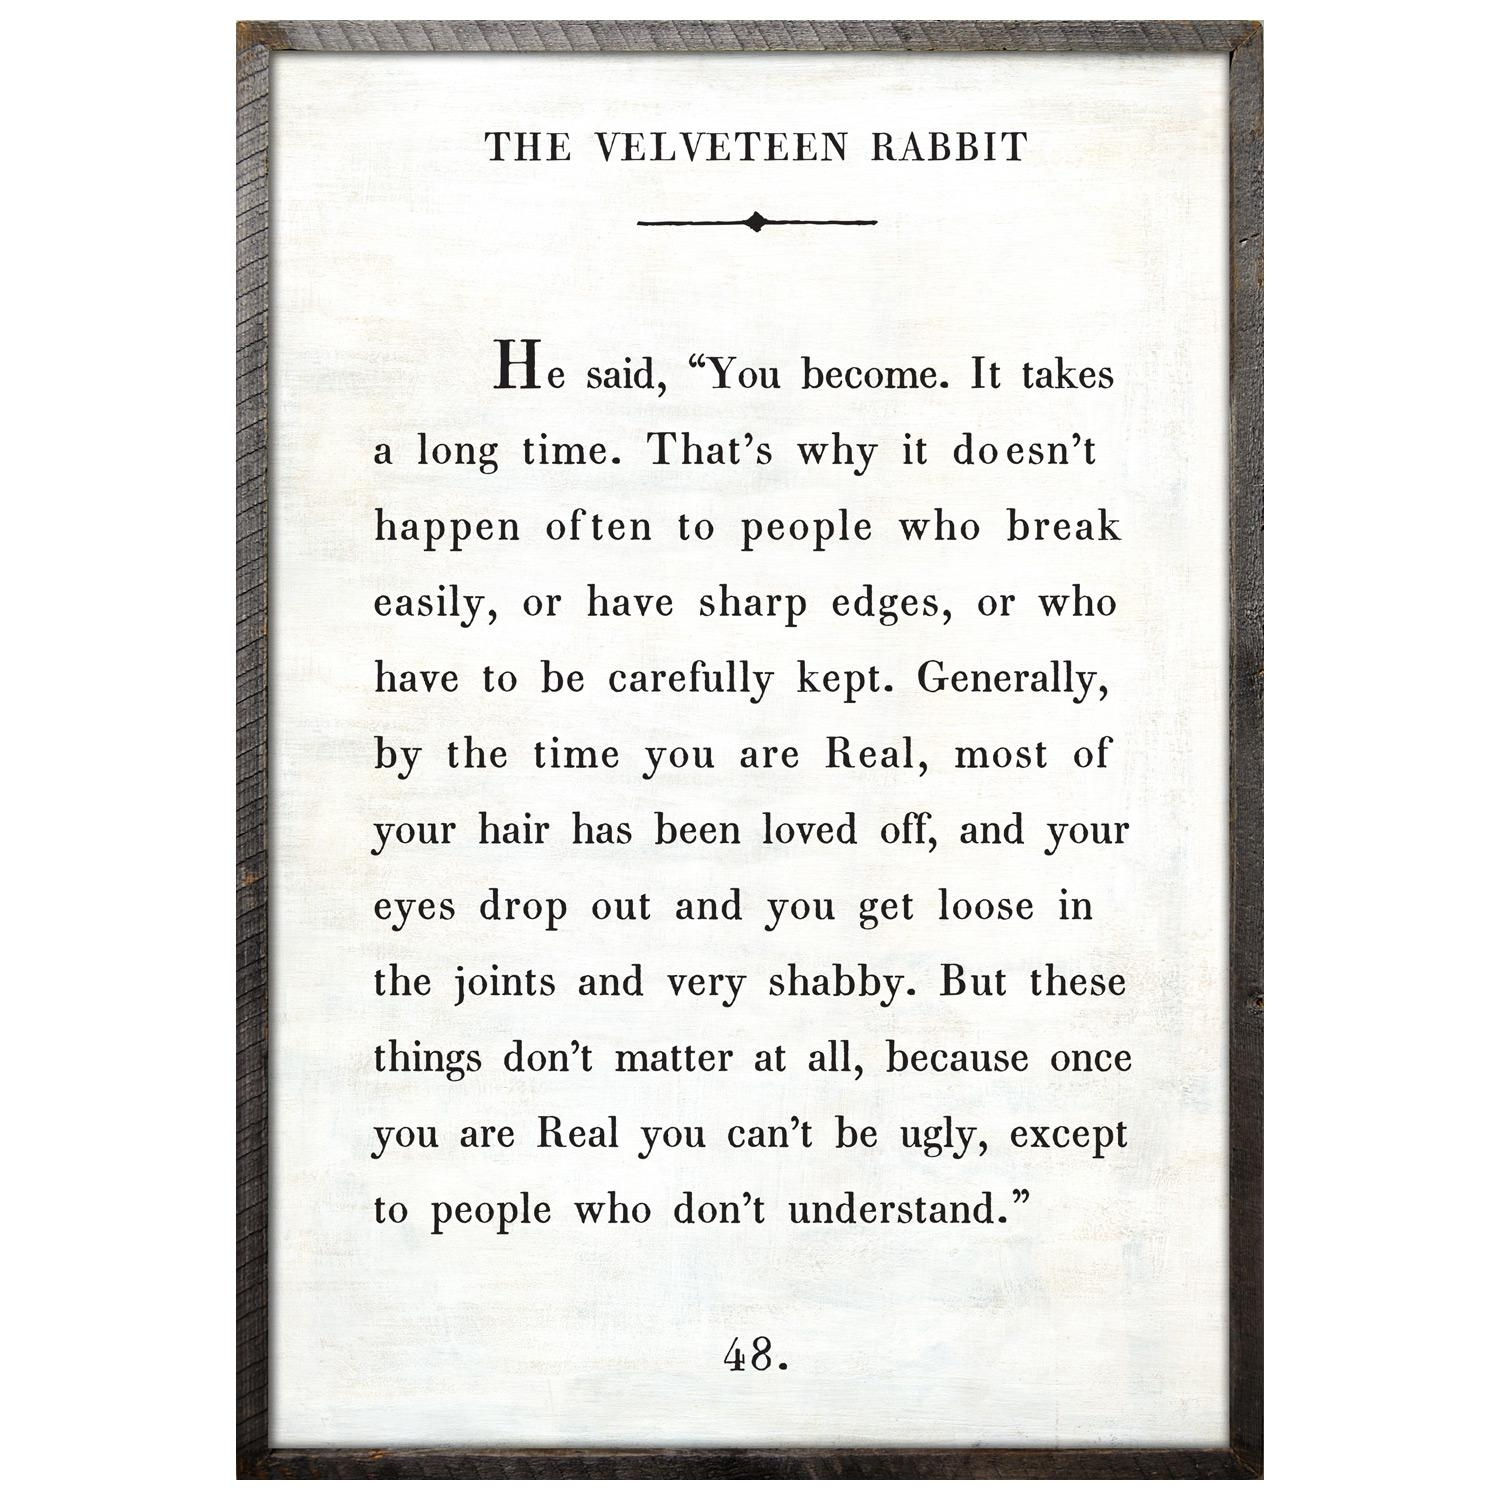 Sugarboo Designs Velveteen Rabbit Art Print Pertaining To Velveteen Rabbit Wall Art (Image 8 of 20)